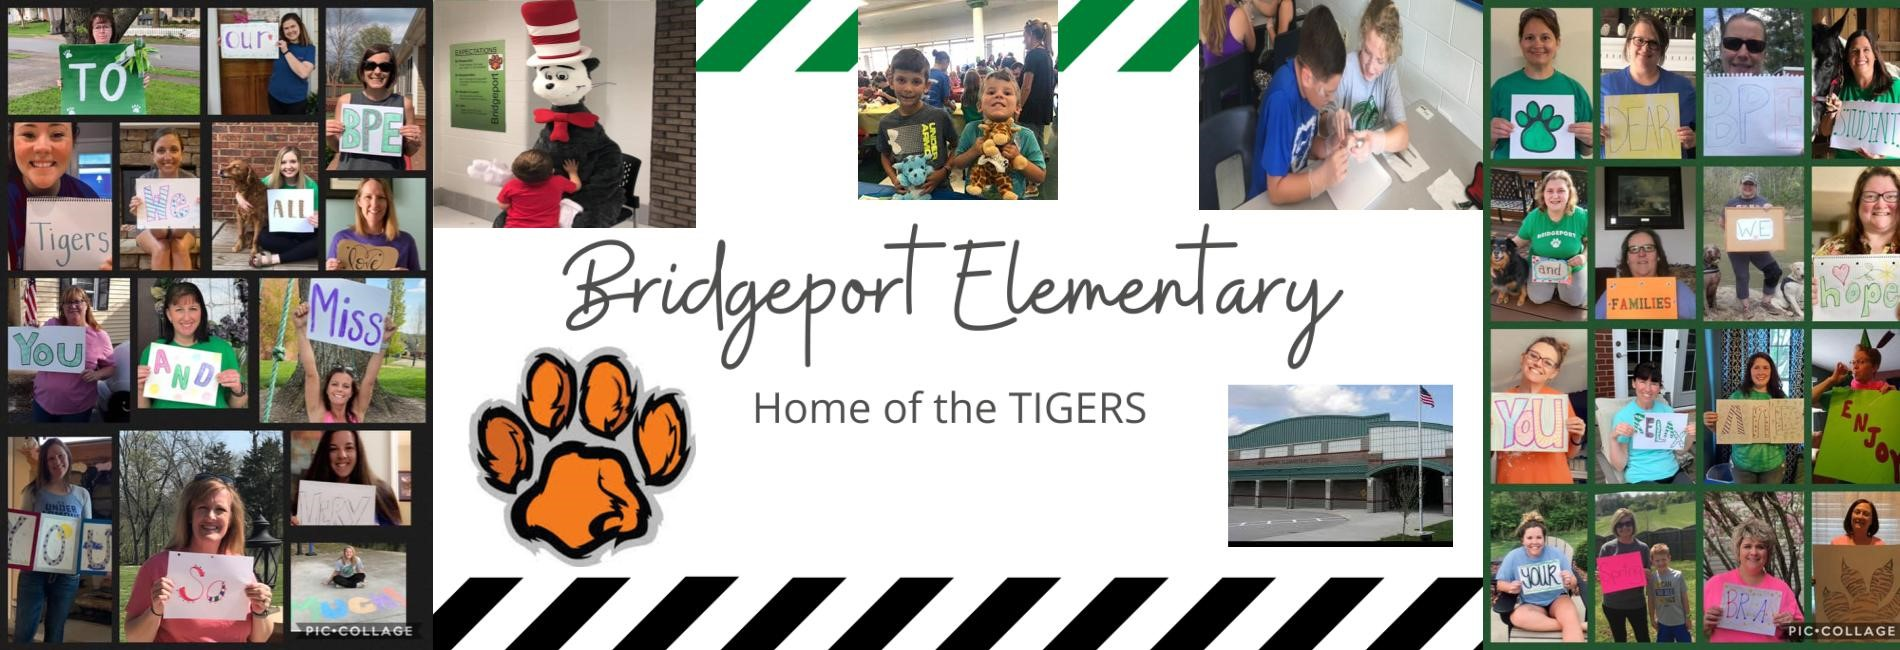 Bridgeport Elementary School, home of the TIGERS